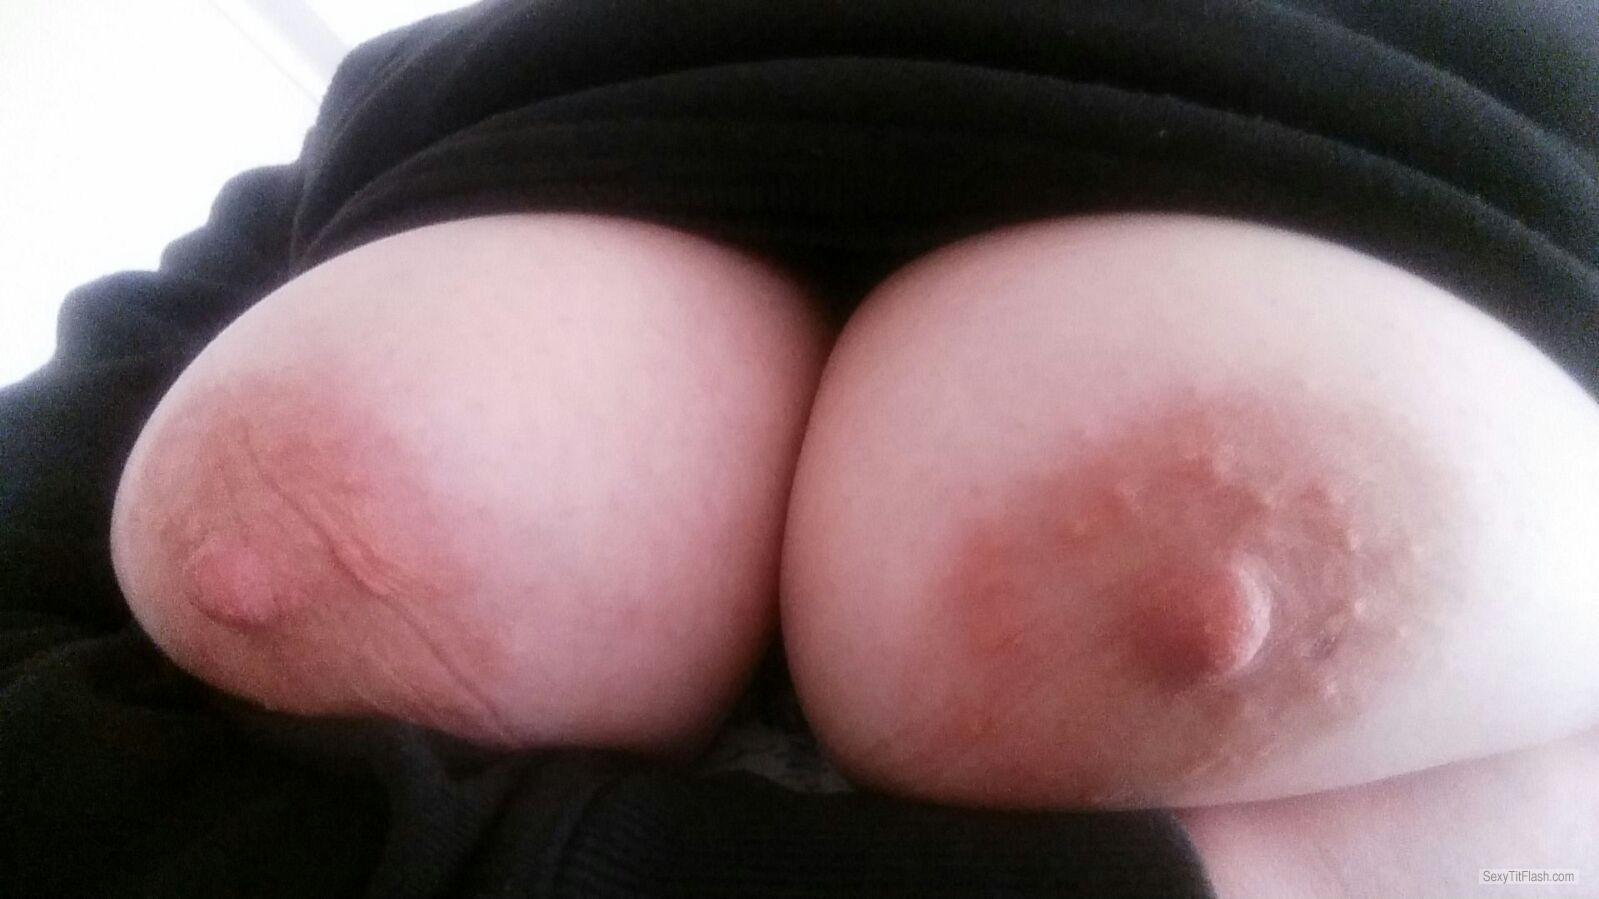 Big Tits Of My Wife Selfie by Ehesau